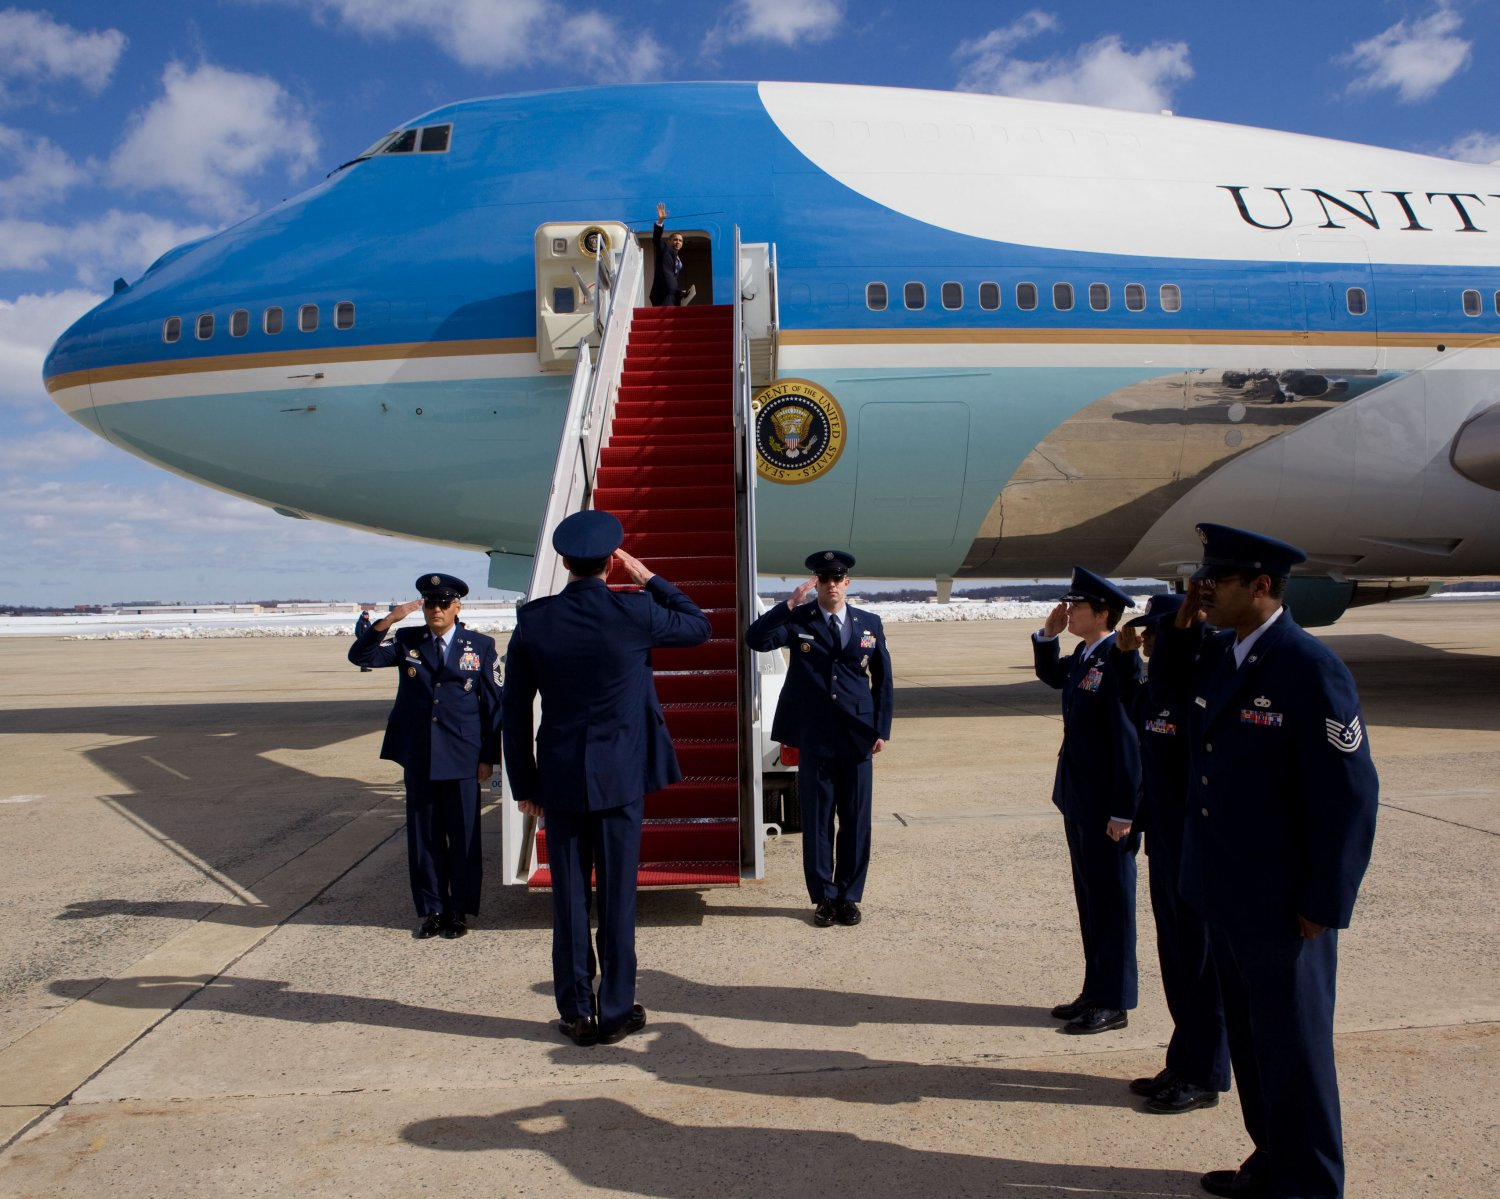 PRESIDENT BARACK OBAMA WAVES FROM AIR FORCE ONE - 8X10 PHOTO (ZY-522)